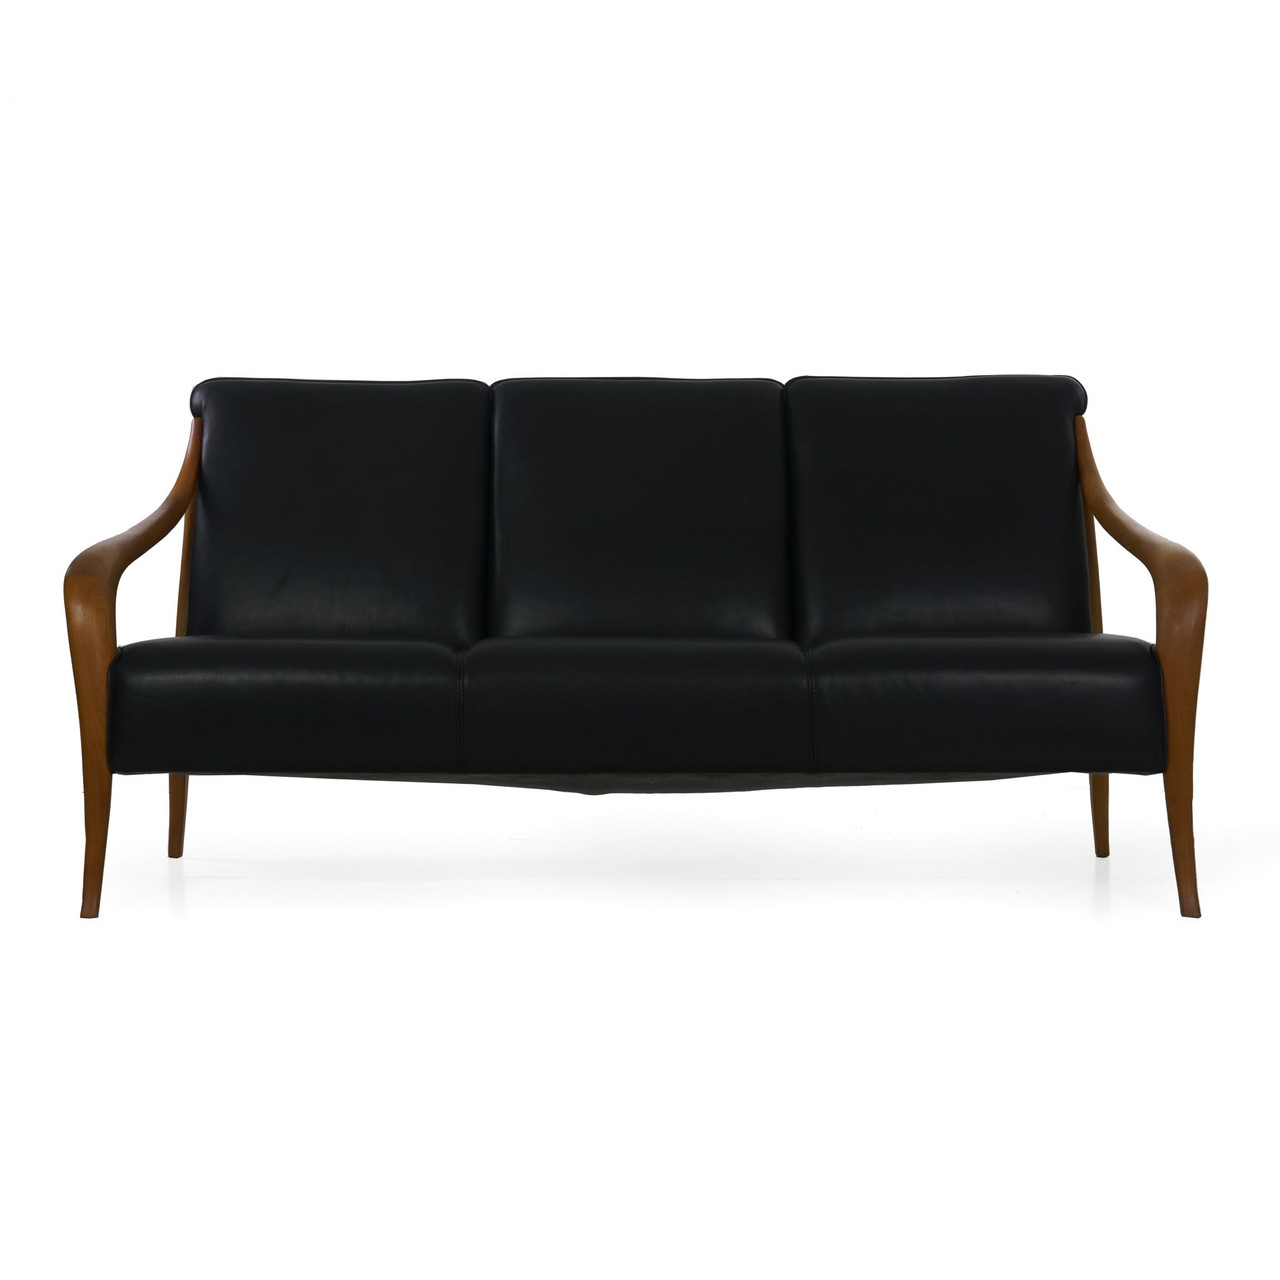 Sofa Modern Scandinavian Modern Sculpted Teak Leather Sofa 20th Century